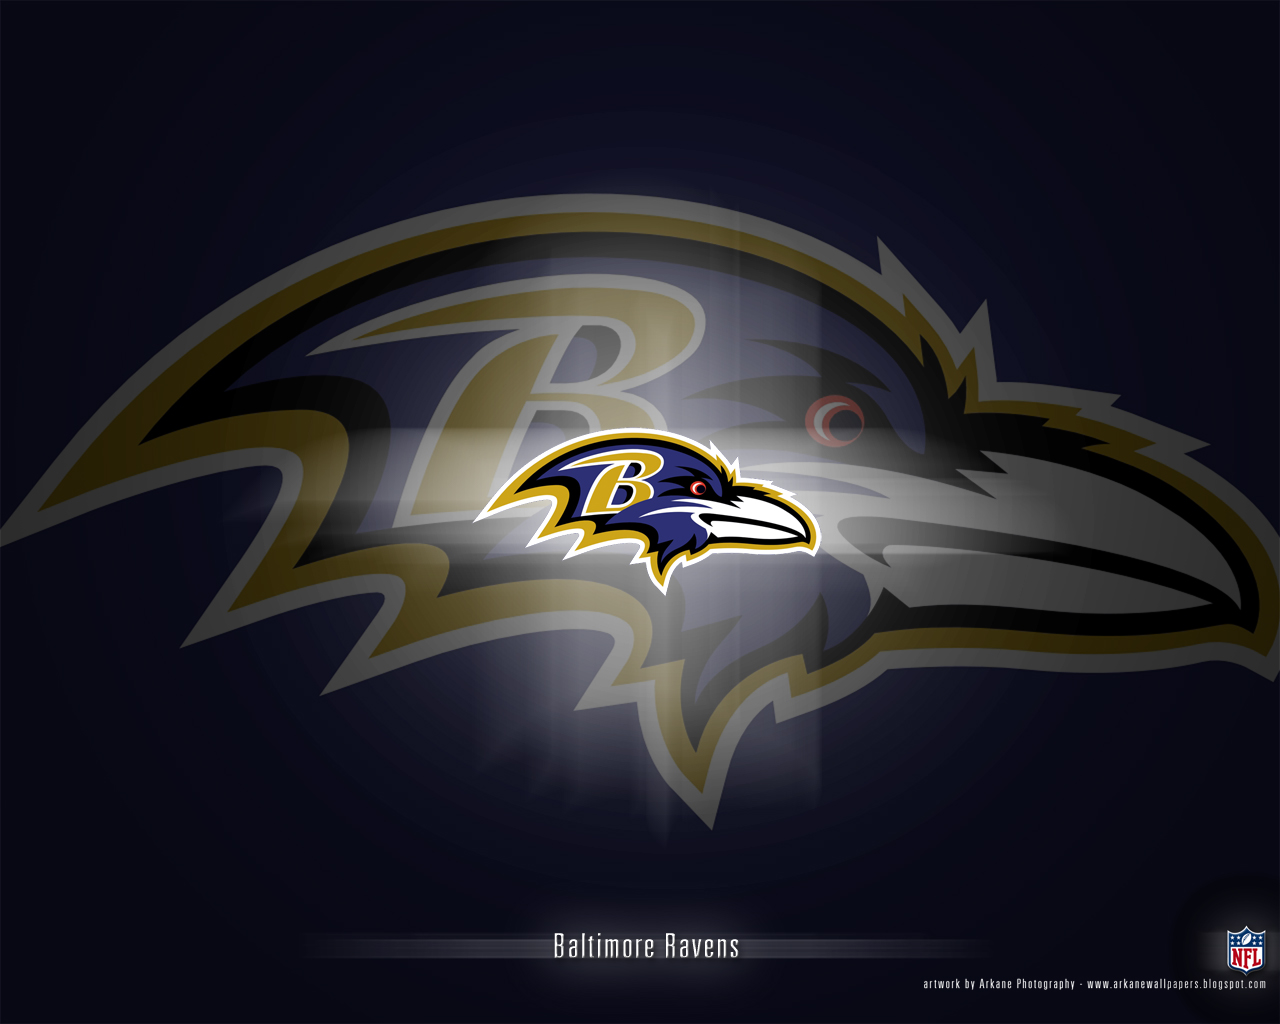 Arkane Nfl Wallpapers Baltimore Ravens Vol 1